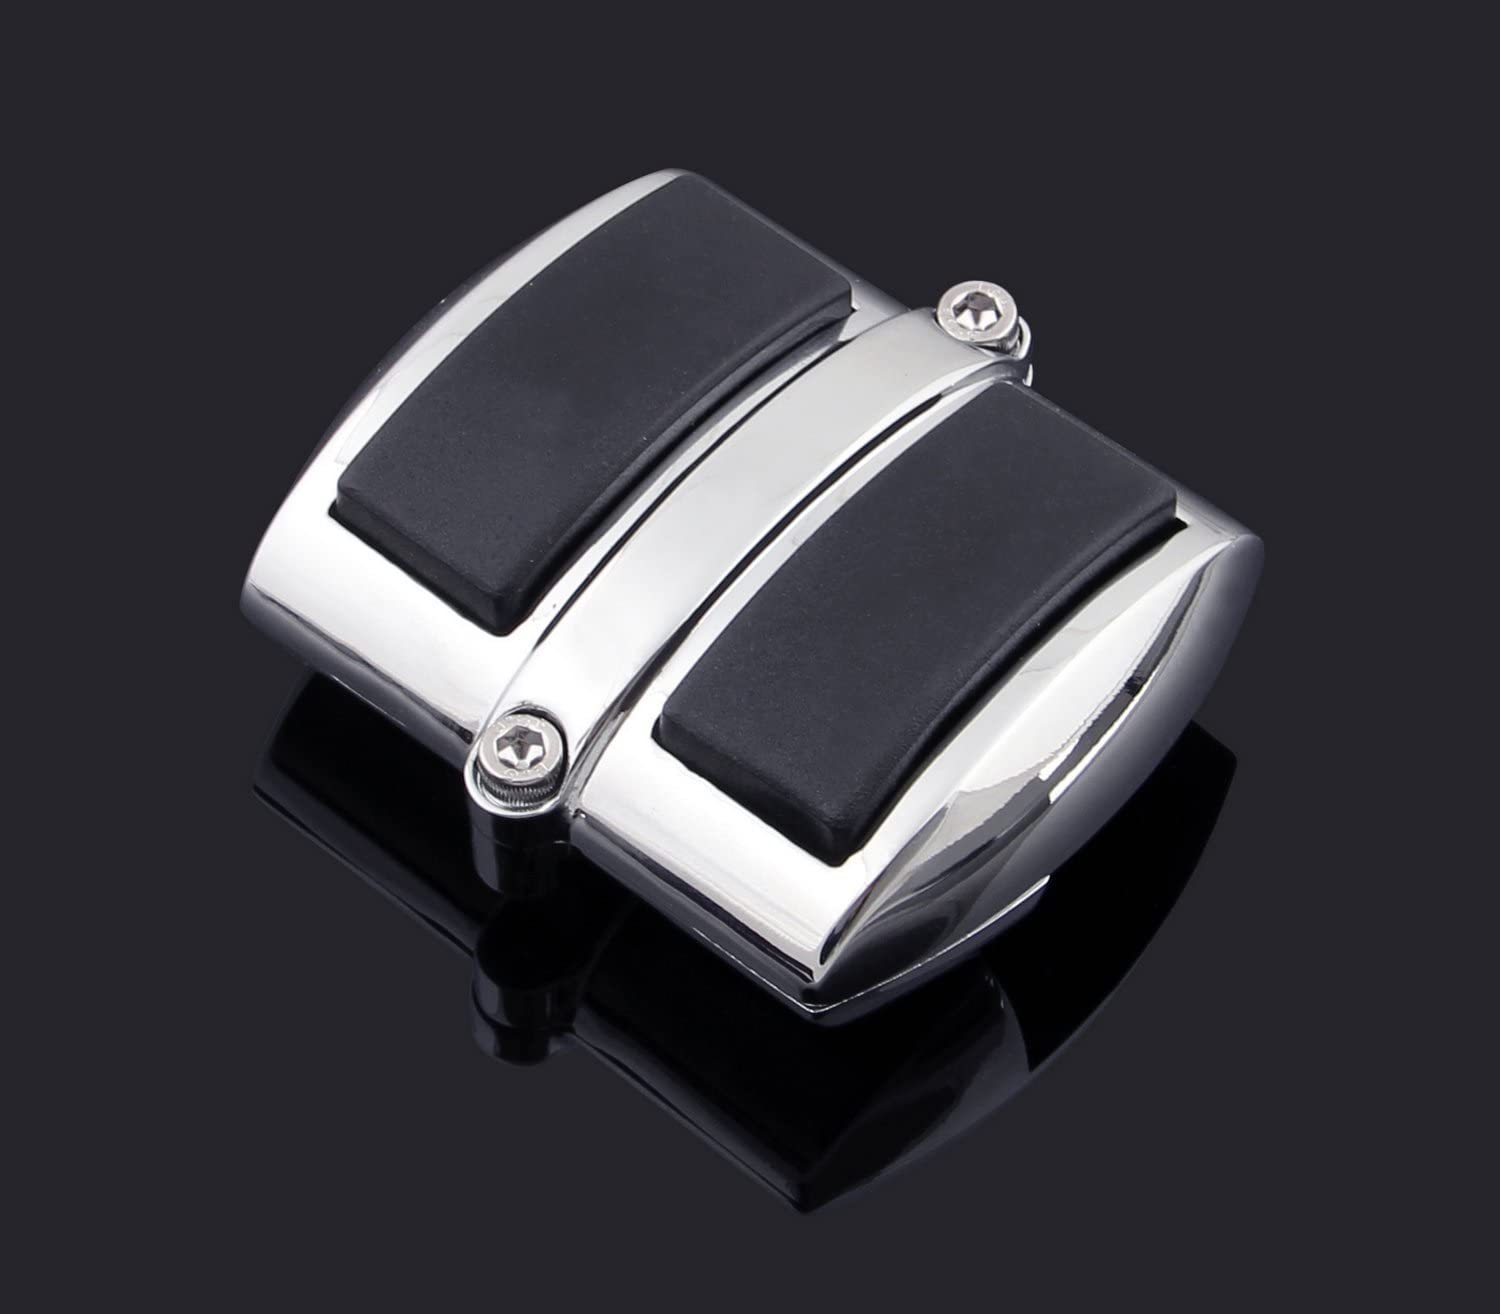 Krator Chrome Brake Pedal//Heel Shift Pad Cover Rubber For Honda Rebel 250 1996-2009 Brake Pedal